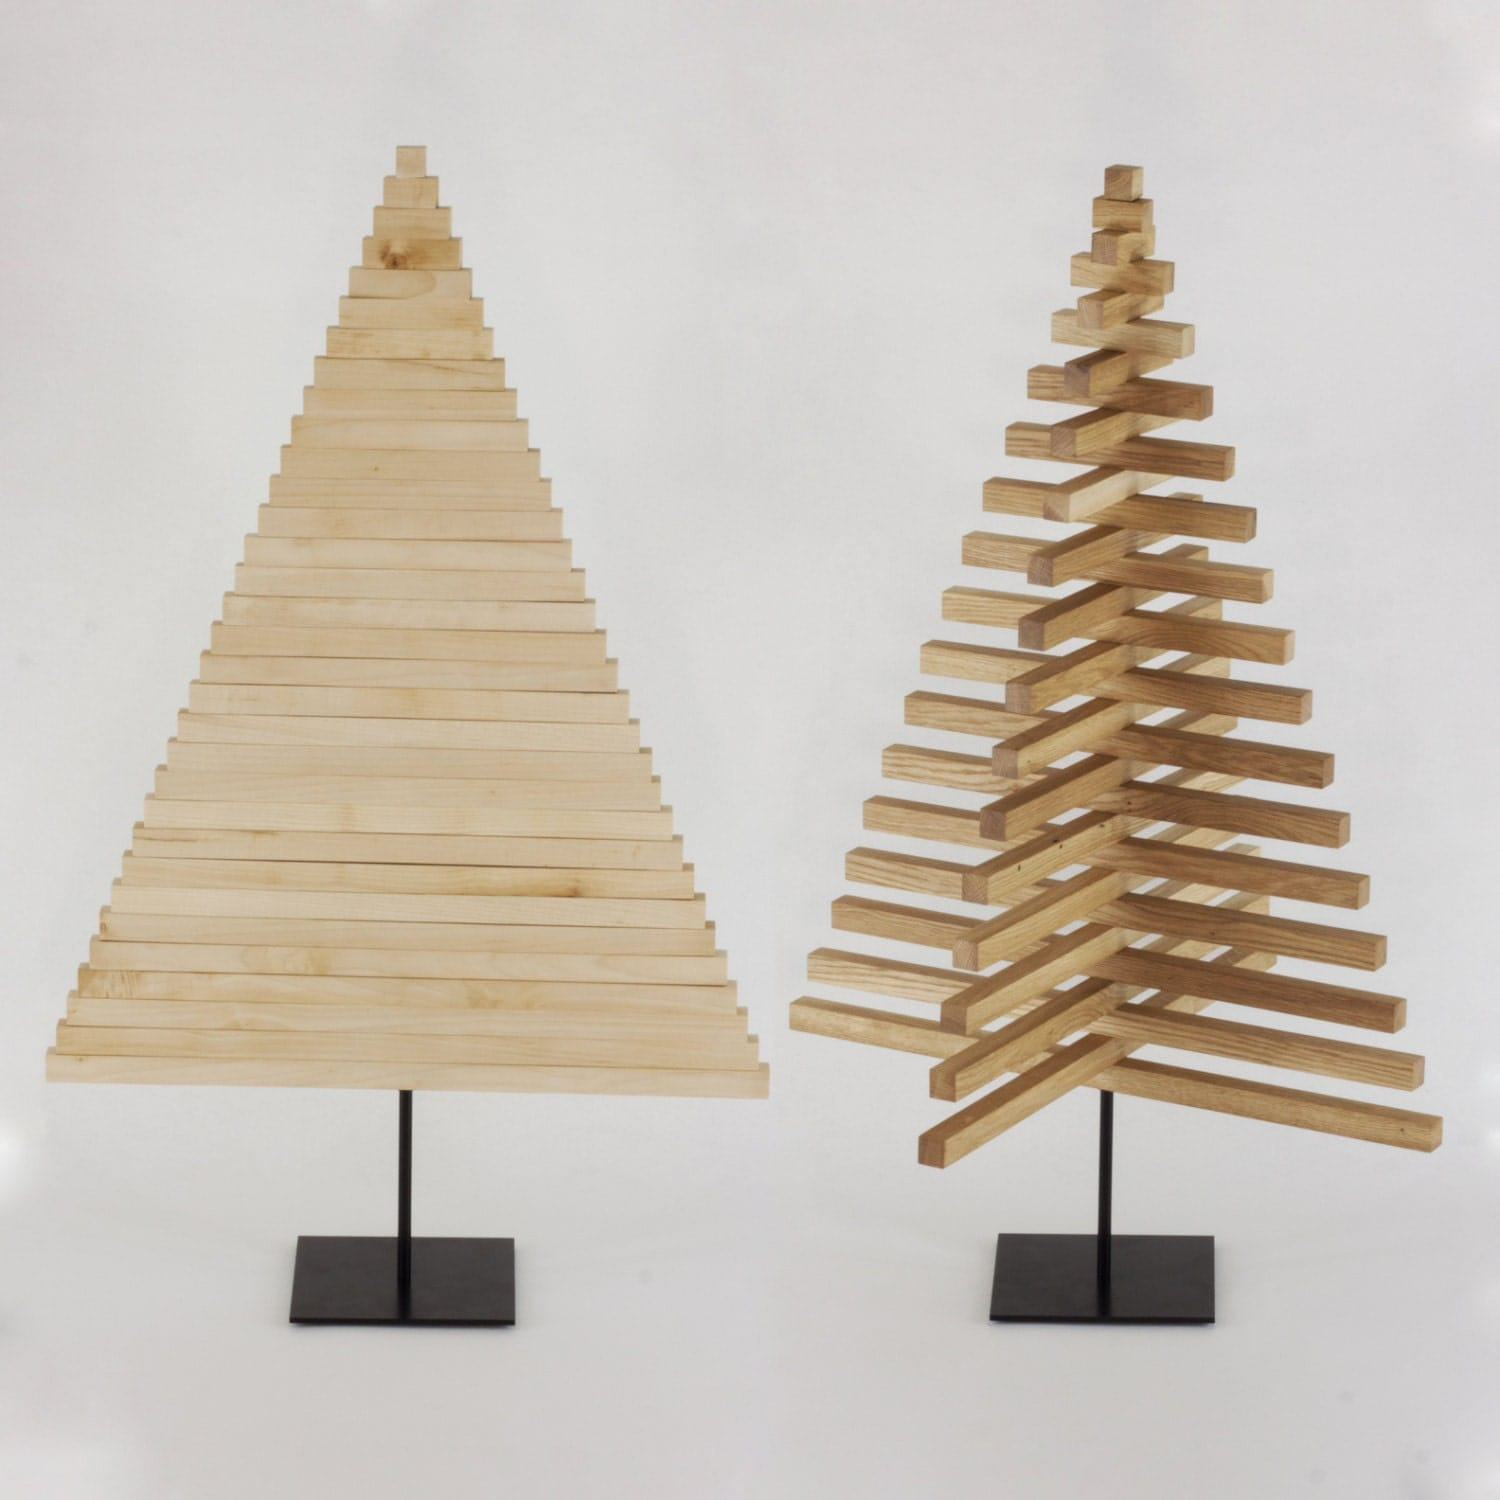 WOODEN CHRISTMAS TREE / 40 Inch 100 Cm / Oak Maple Wood